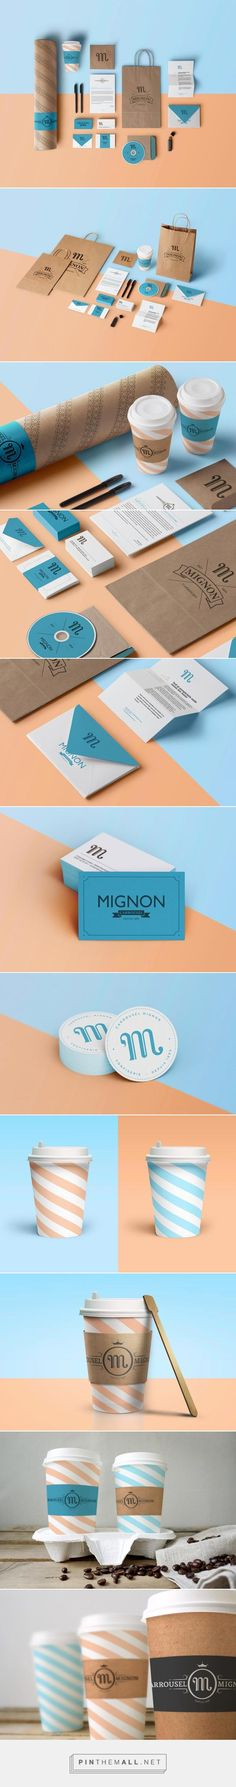 Mignon - Art Direction, Branding, and Packaging by Benoit Galangau